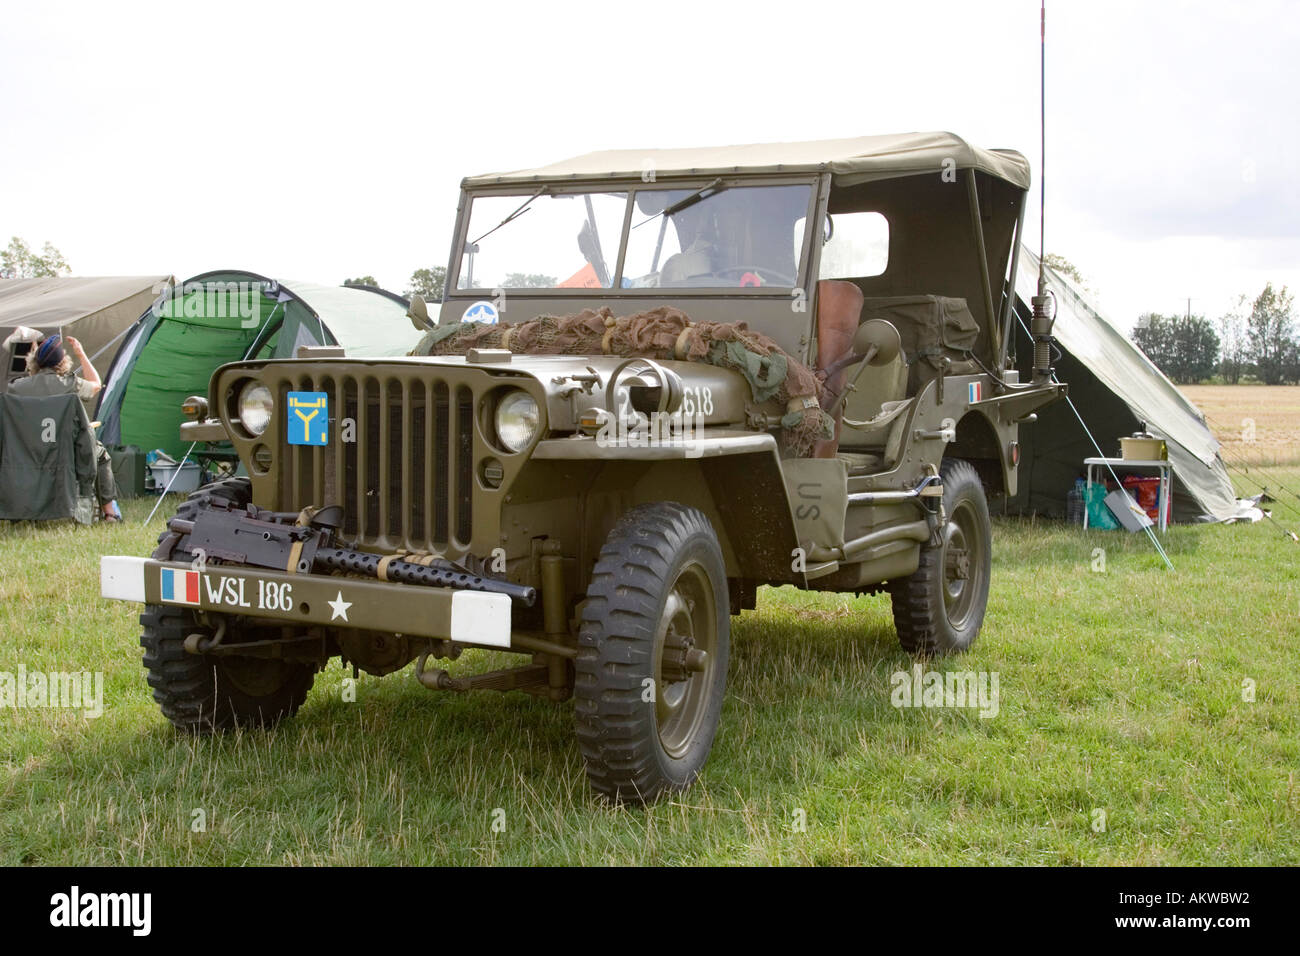 WW2 army Jeep truck on show in UK - Stock Image